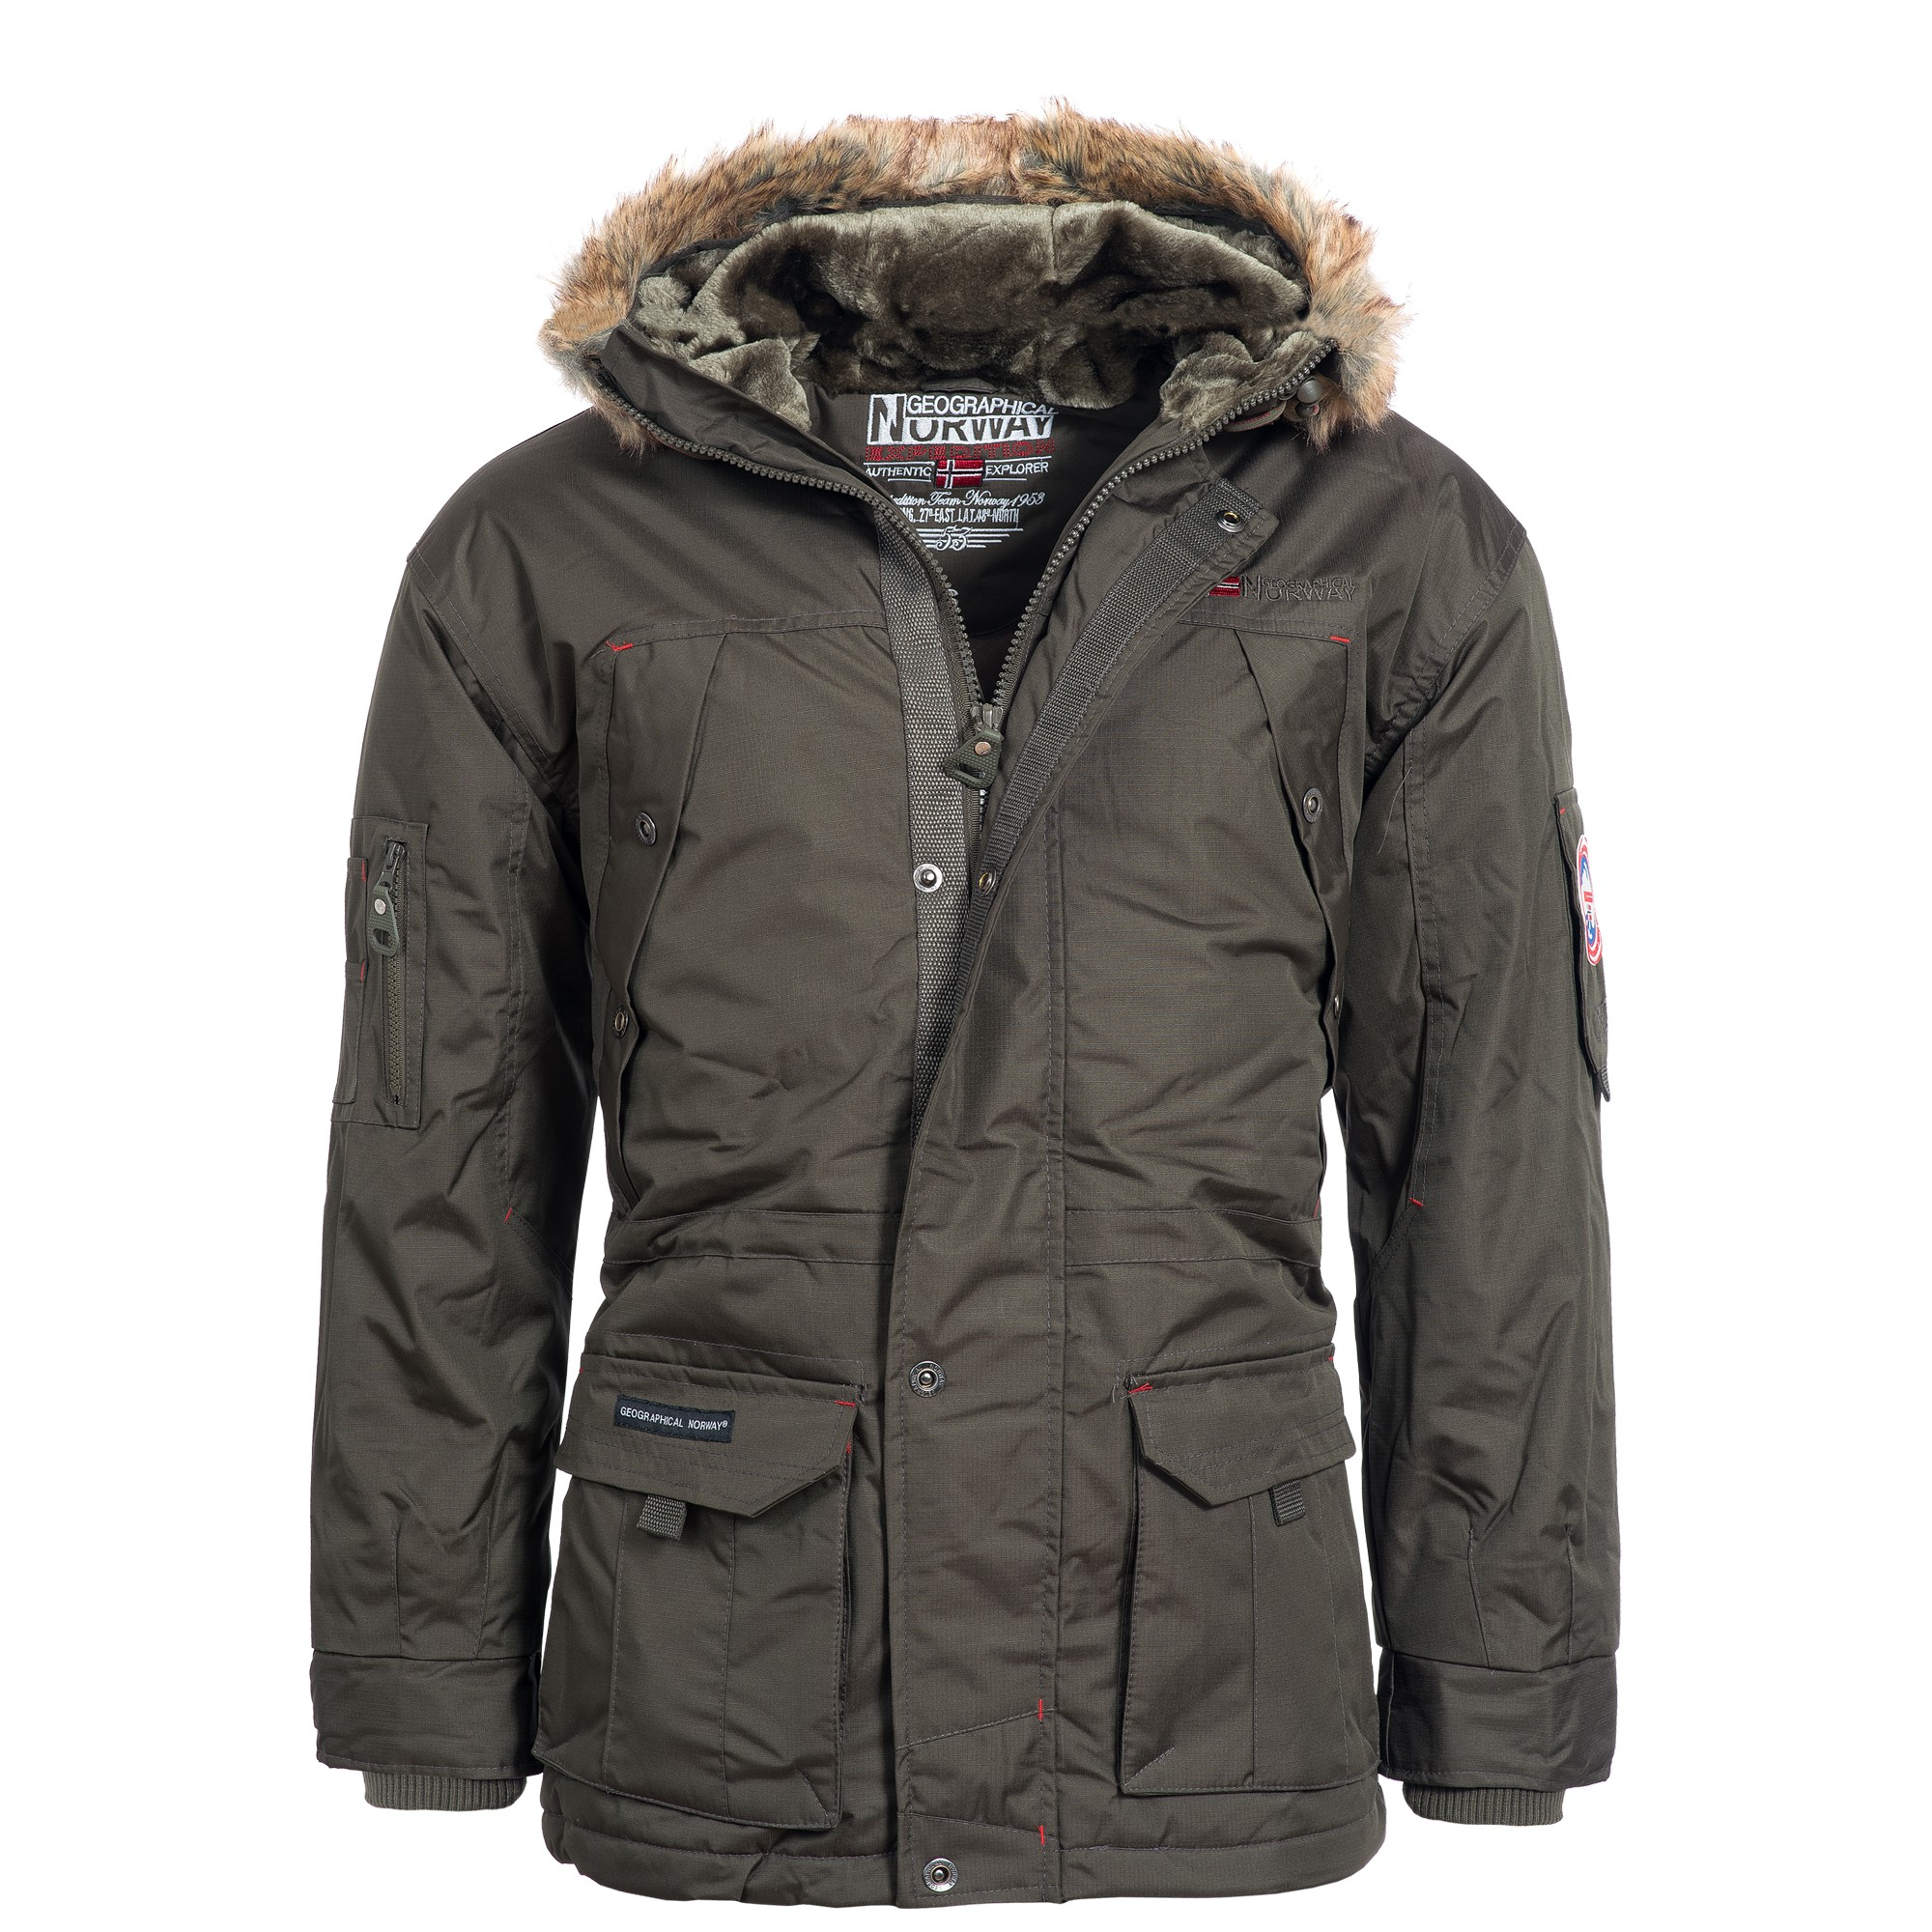 geographical norway atlas herren winterjacke jacke parka gr s xxxl alaska ebay. Black Bedroom Furniture Sets. Home Design Ideas